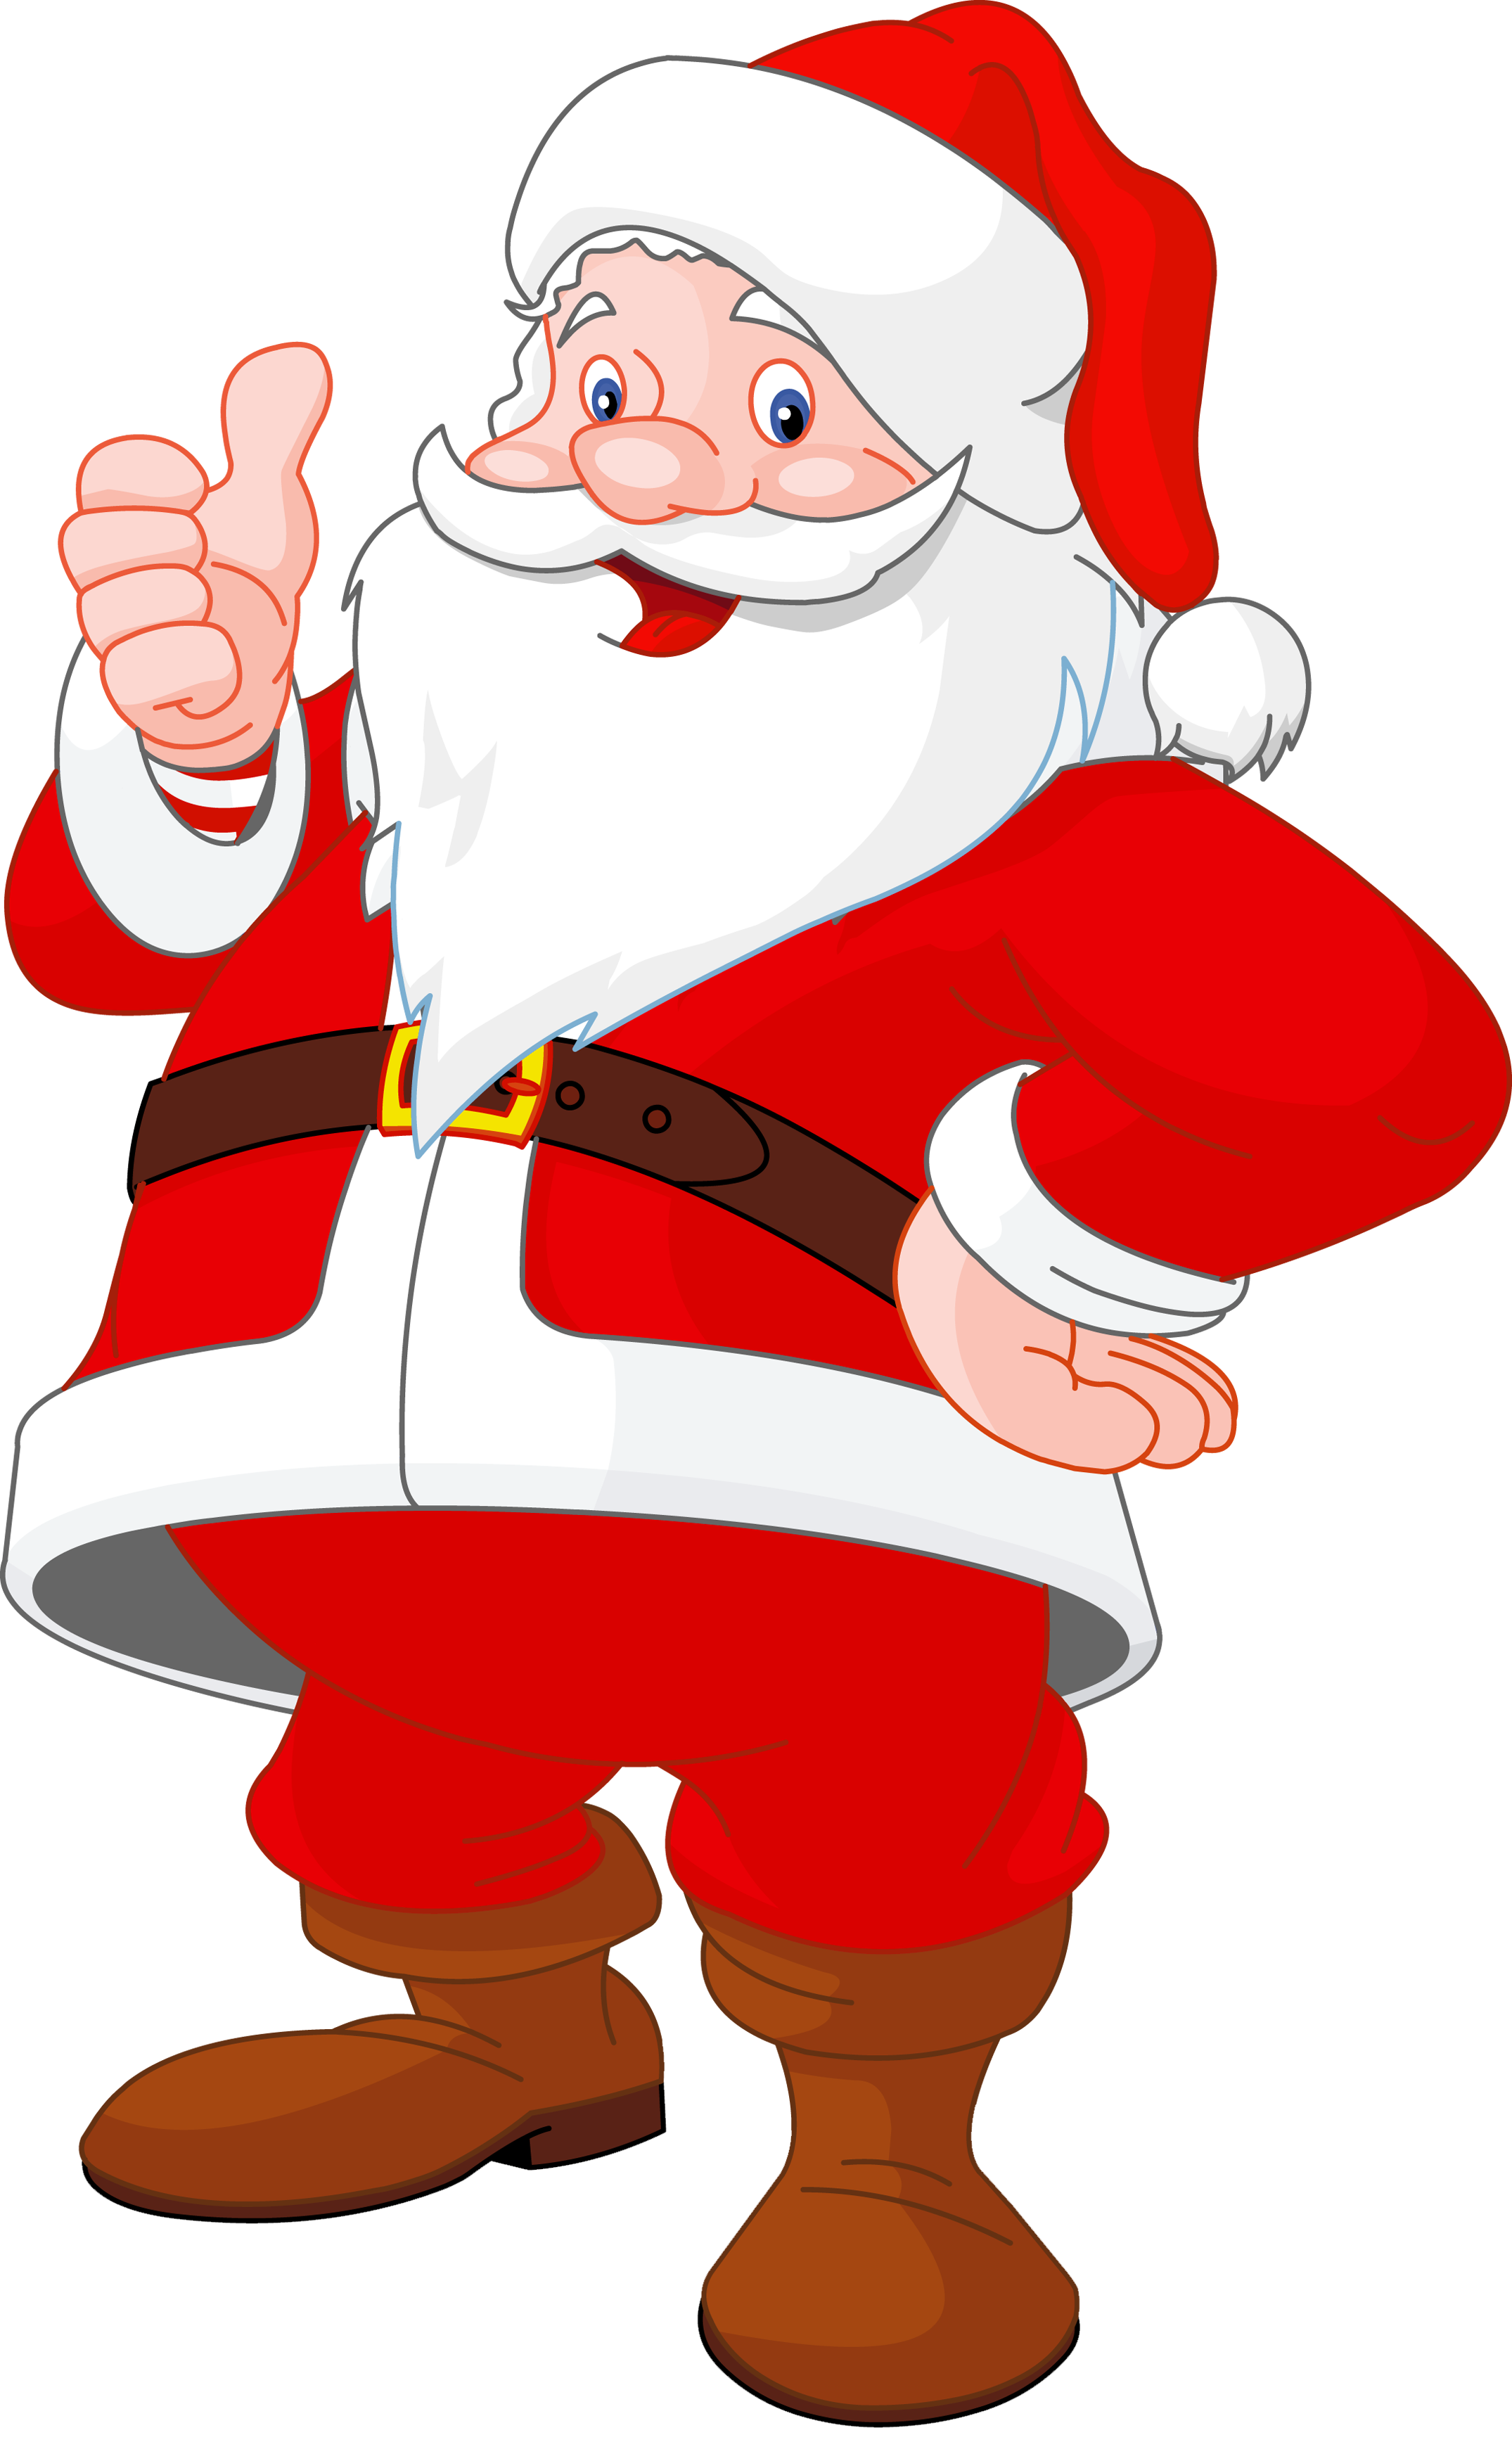 Transparent Santa Claus | Gallery Yopric-Transparent Santa Claus | Gallery Yopriceville - High-Quality Images and  Transparent PNG Free Clipart-1